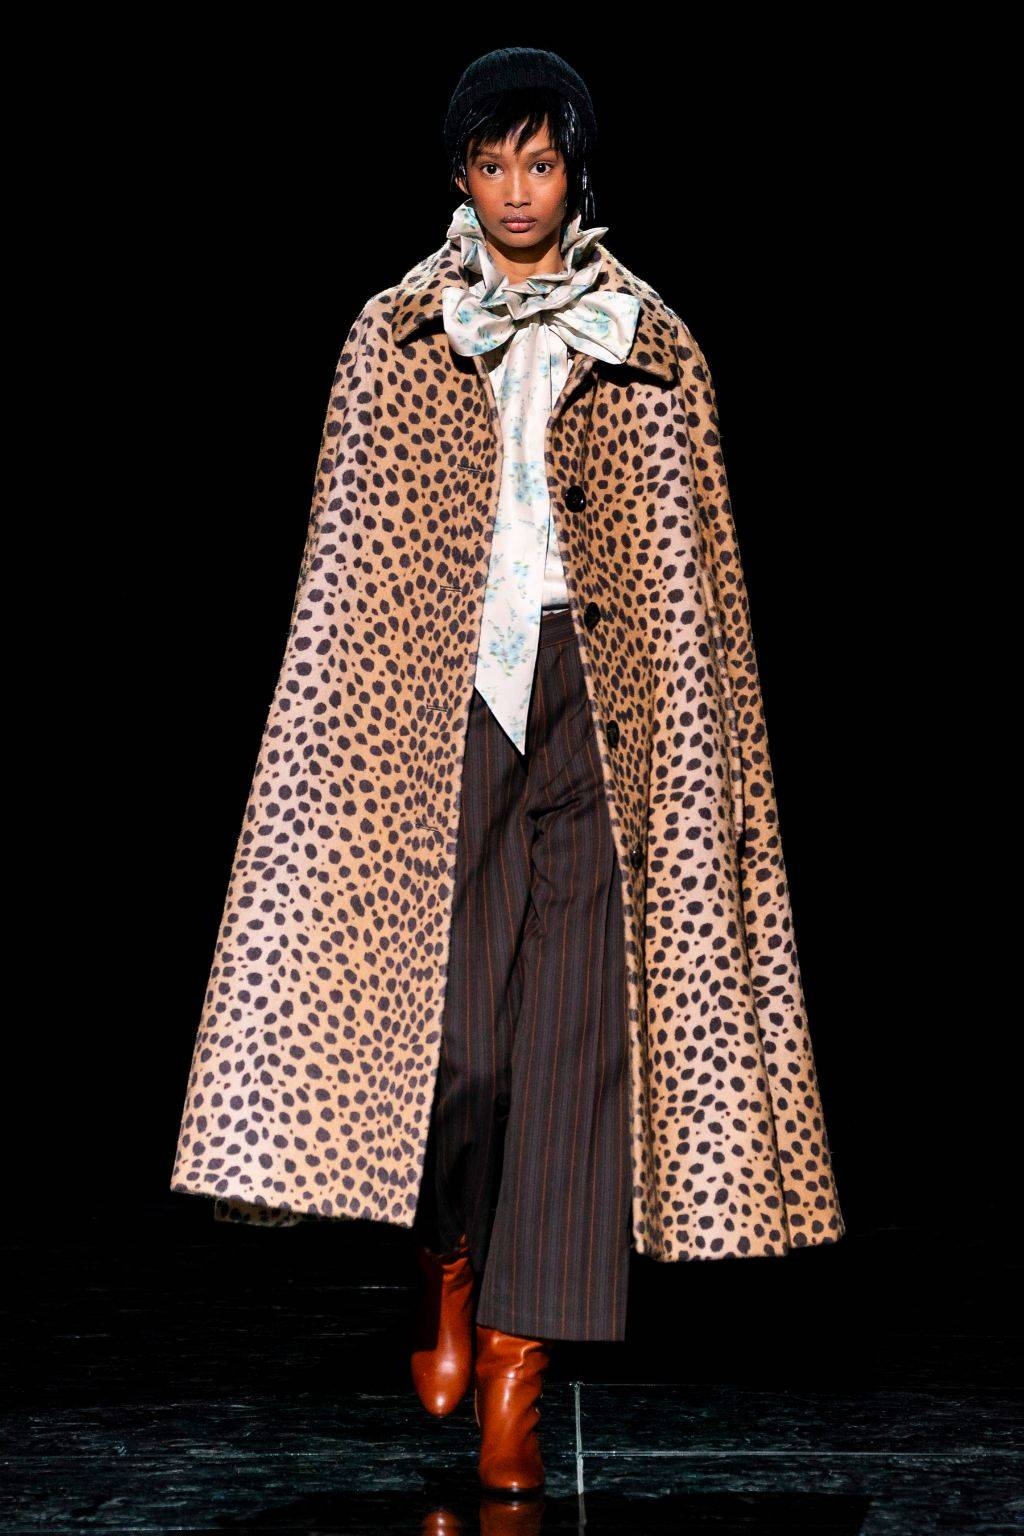 MARC JACOBS READY-TO-WEAR | FALL 2019